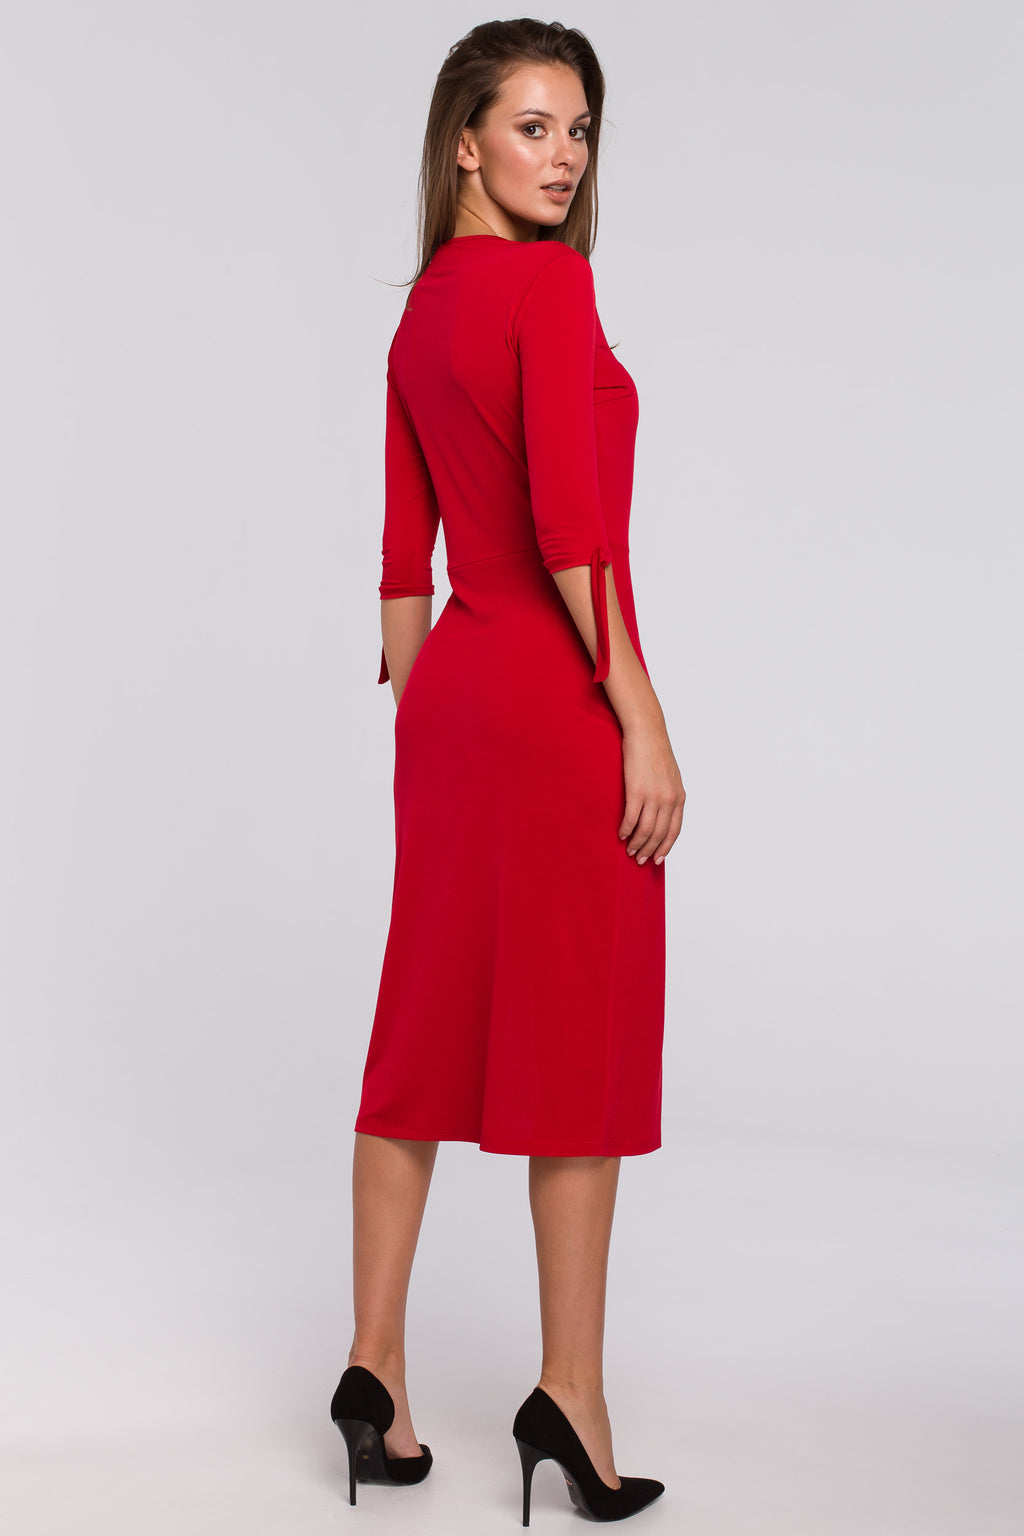 Red Midi Dress With A Side Slit And Elbow Tied Sleeves - So Chic Boutique